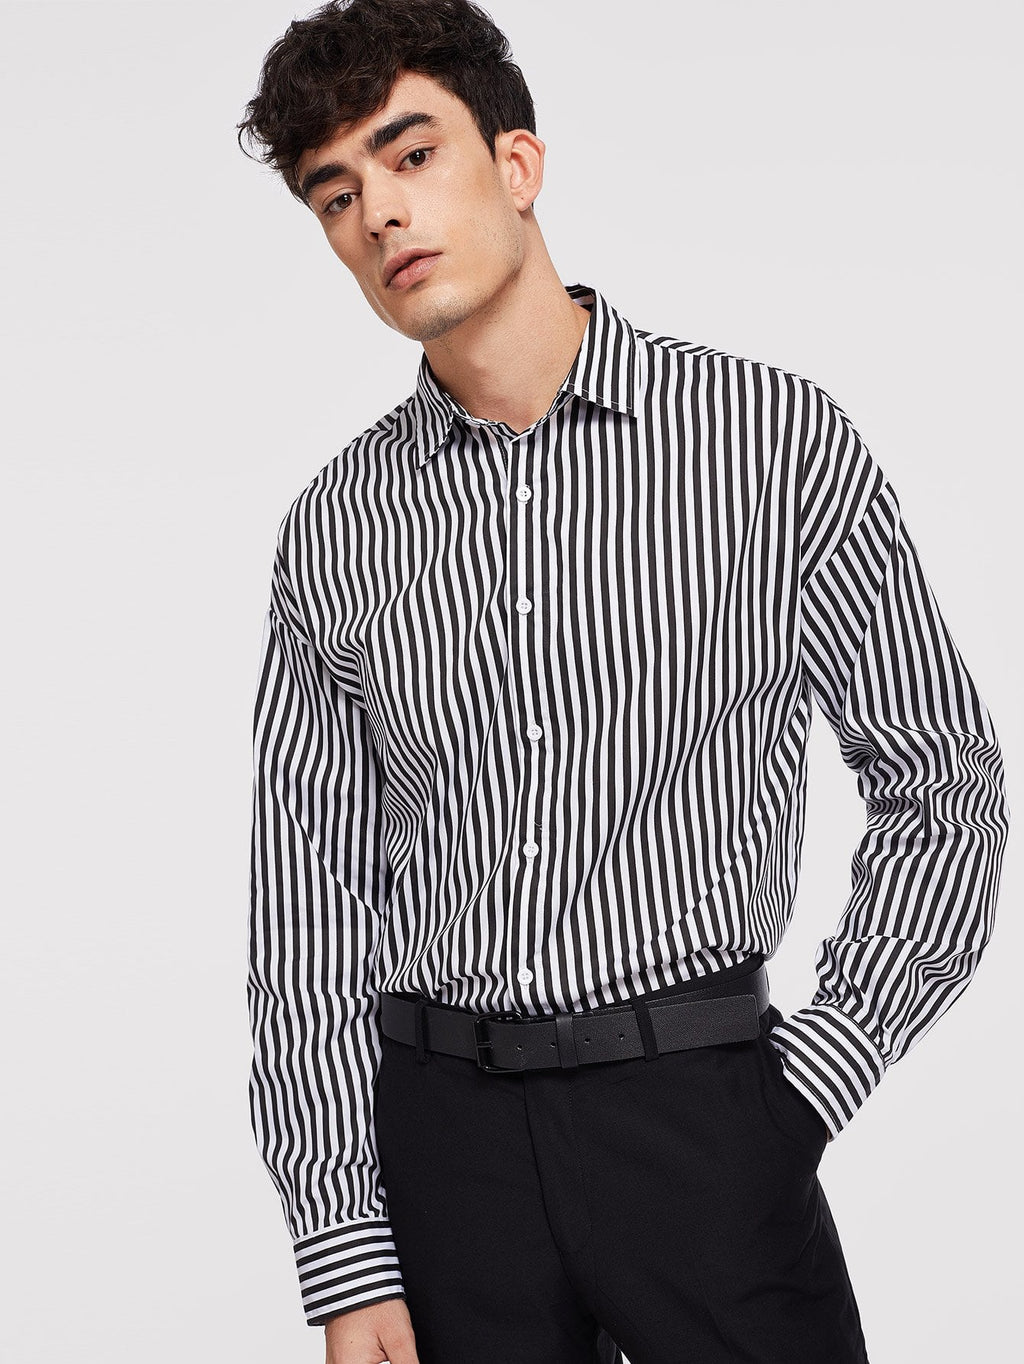 Men's Formal Shirts - Button Front Striped Shirt